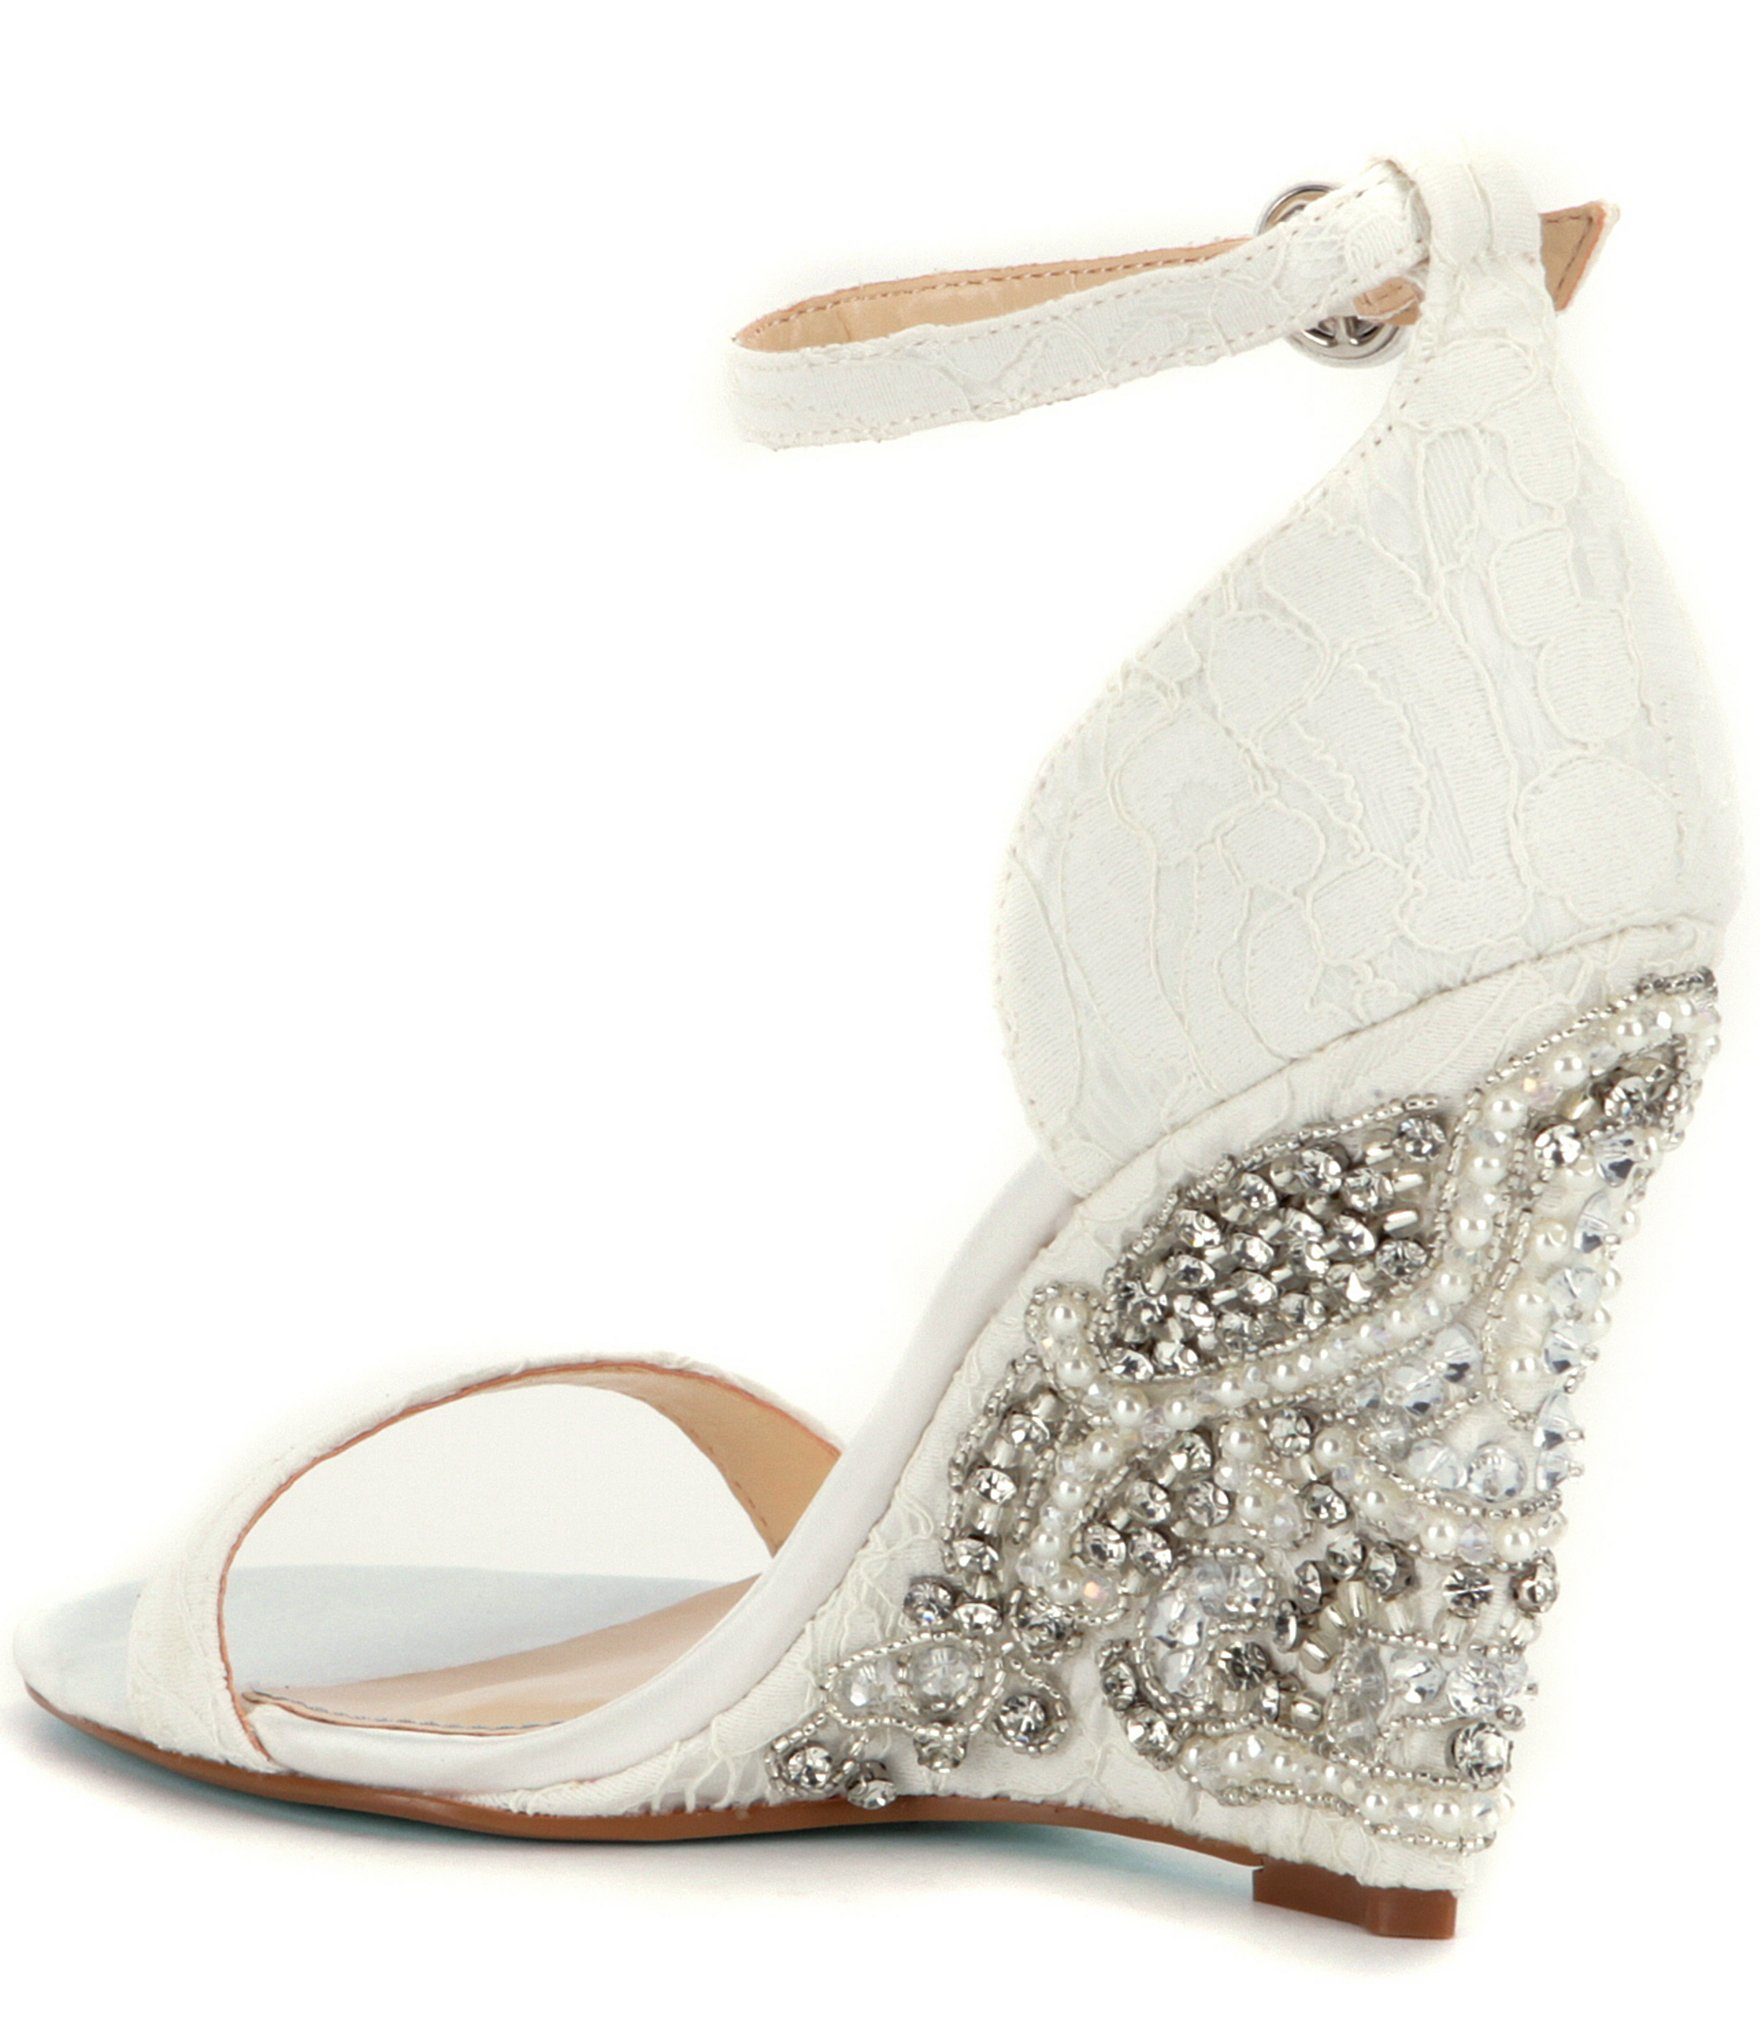 Blue by Betsey Johnson Alisa Lace and Satin Wedge Sandals B6QteipWaF